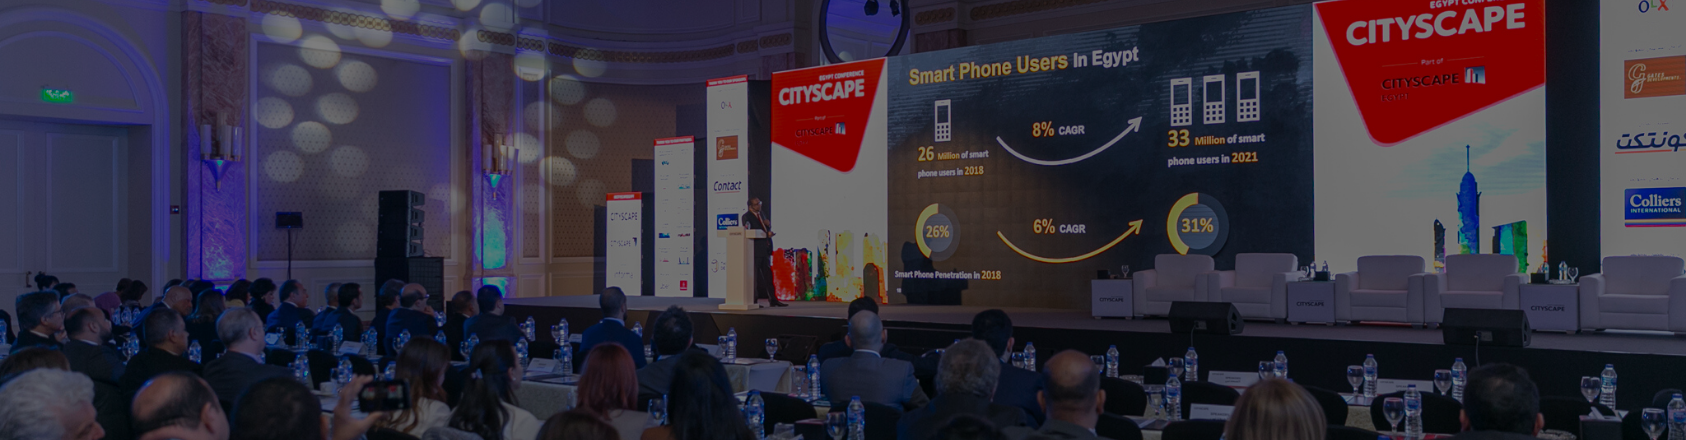 Cityscape Egypt Conference and Awards event updates